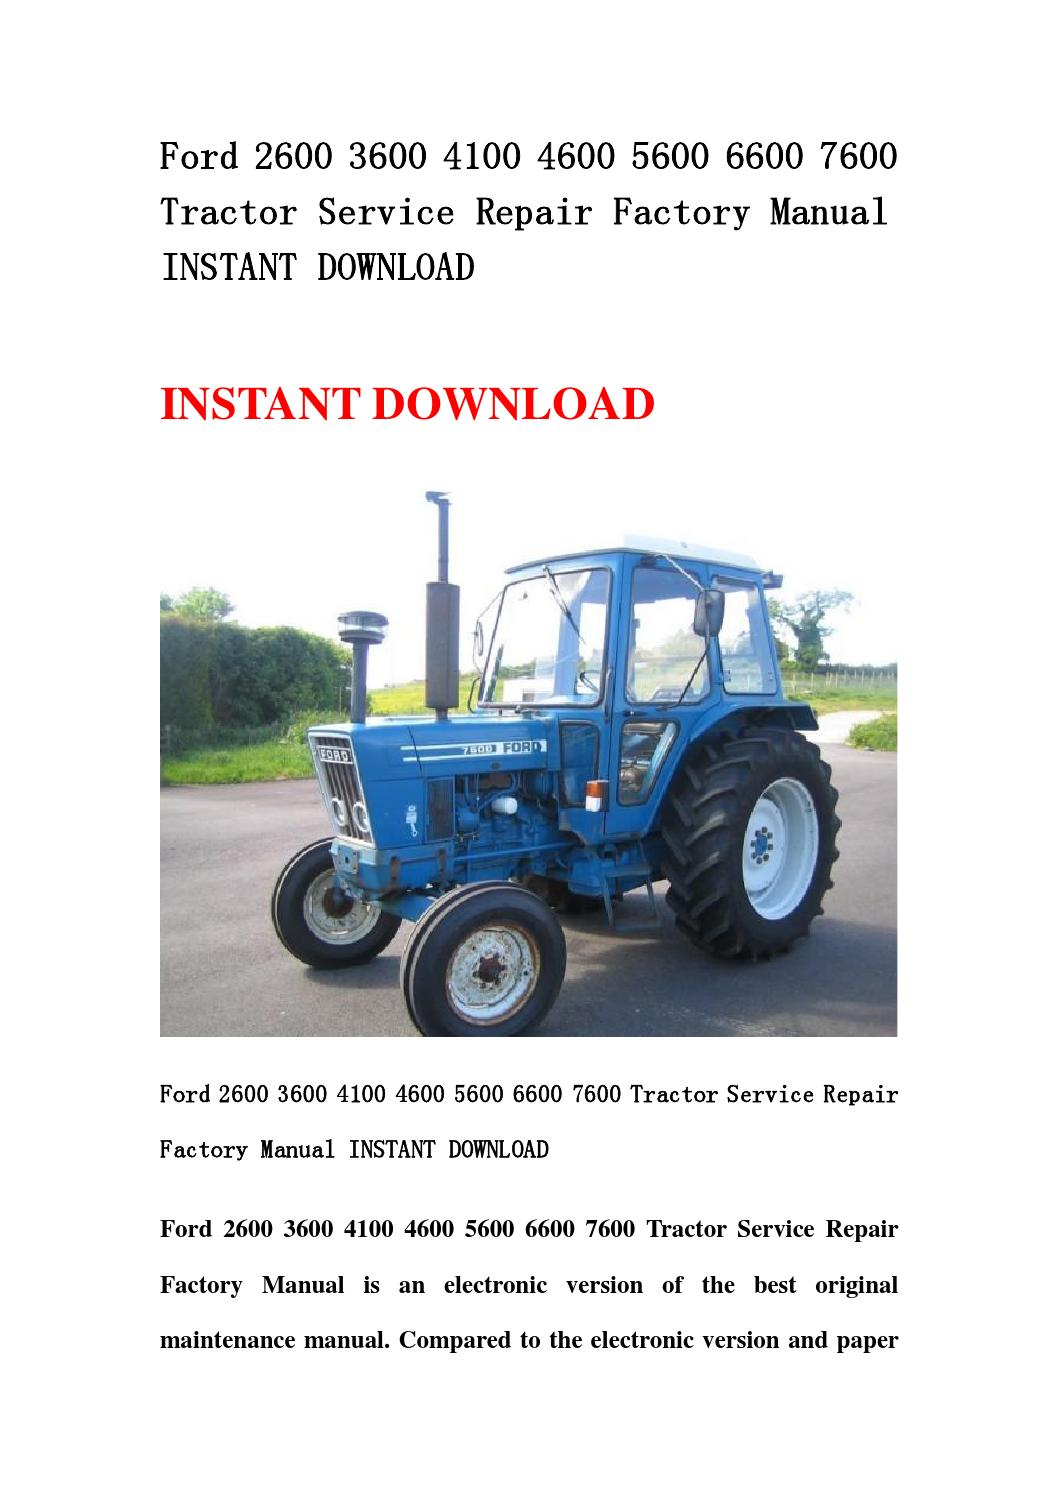 2600 Ford Tractor Specifications : Ford repair manual the best free software for your